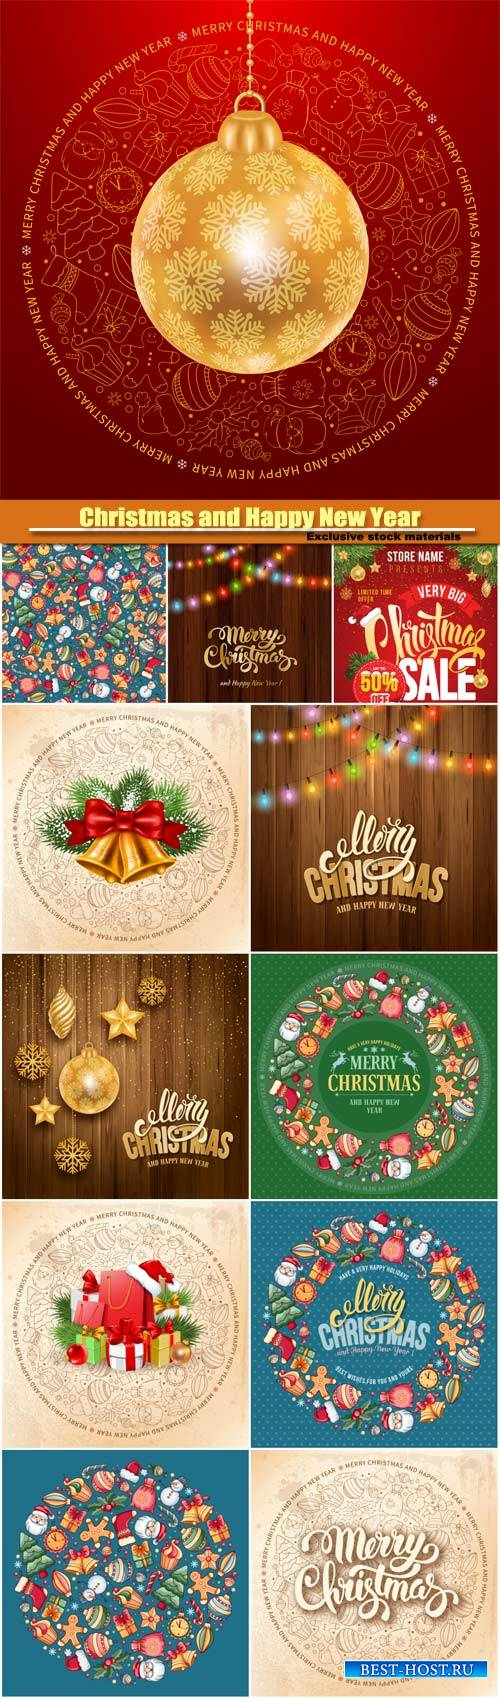 Christmas and Happy New Year vector greeting card